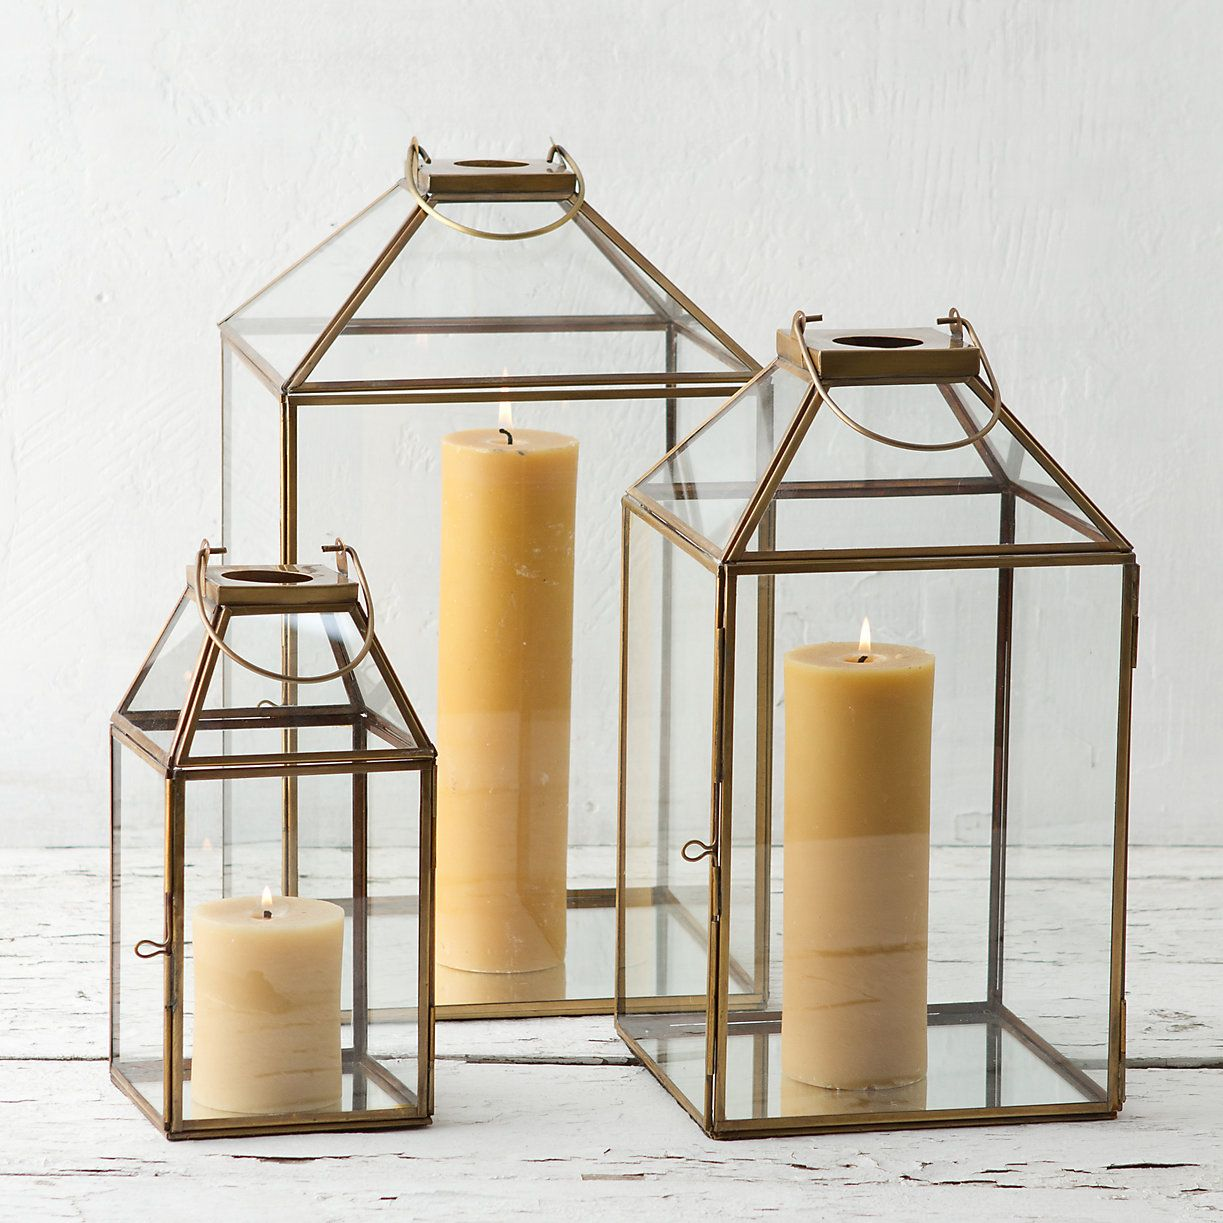 Hanging outdoor candle lanterns for patio - Hanging Outdoor Candle Lanterns For Patio 53